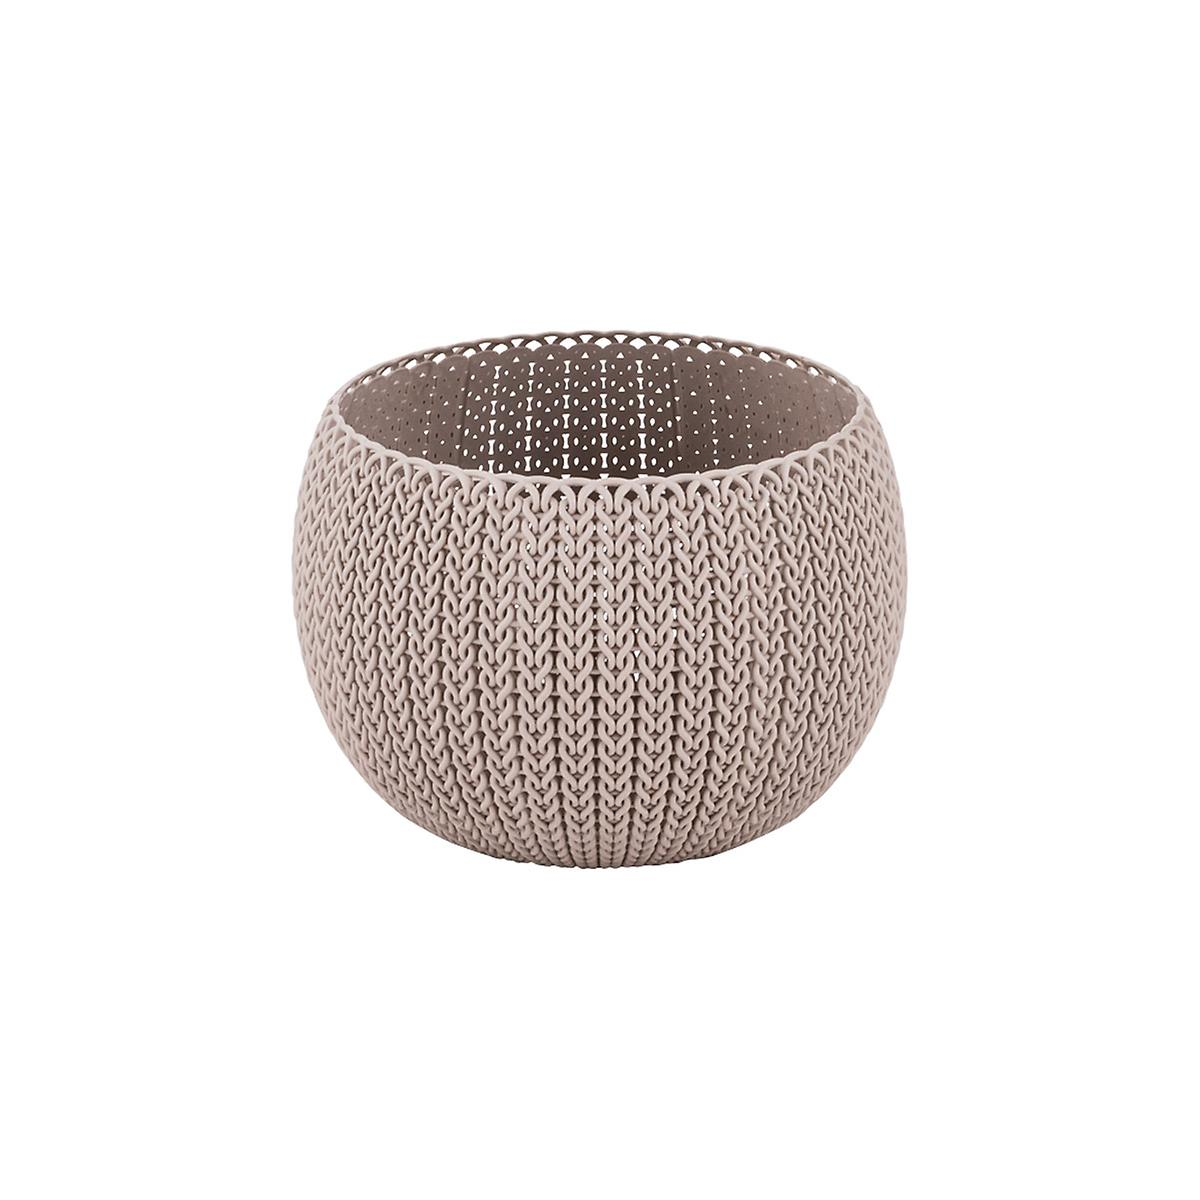 Curver Sand Knit Storage Baskets: Curver Small Sand Knit Storage Bowl